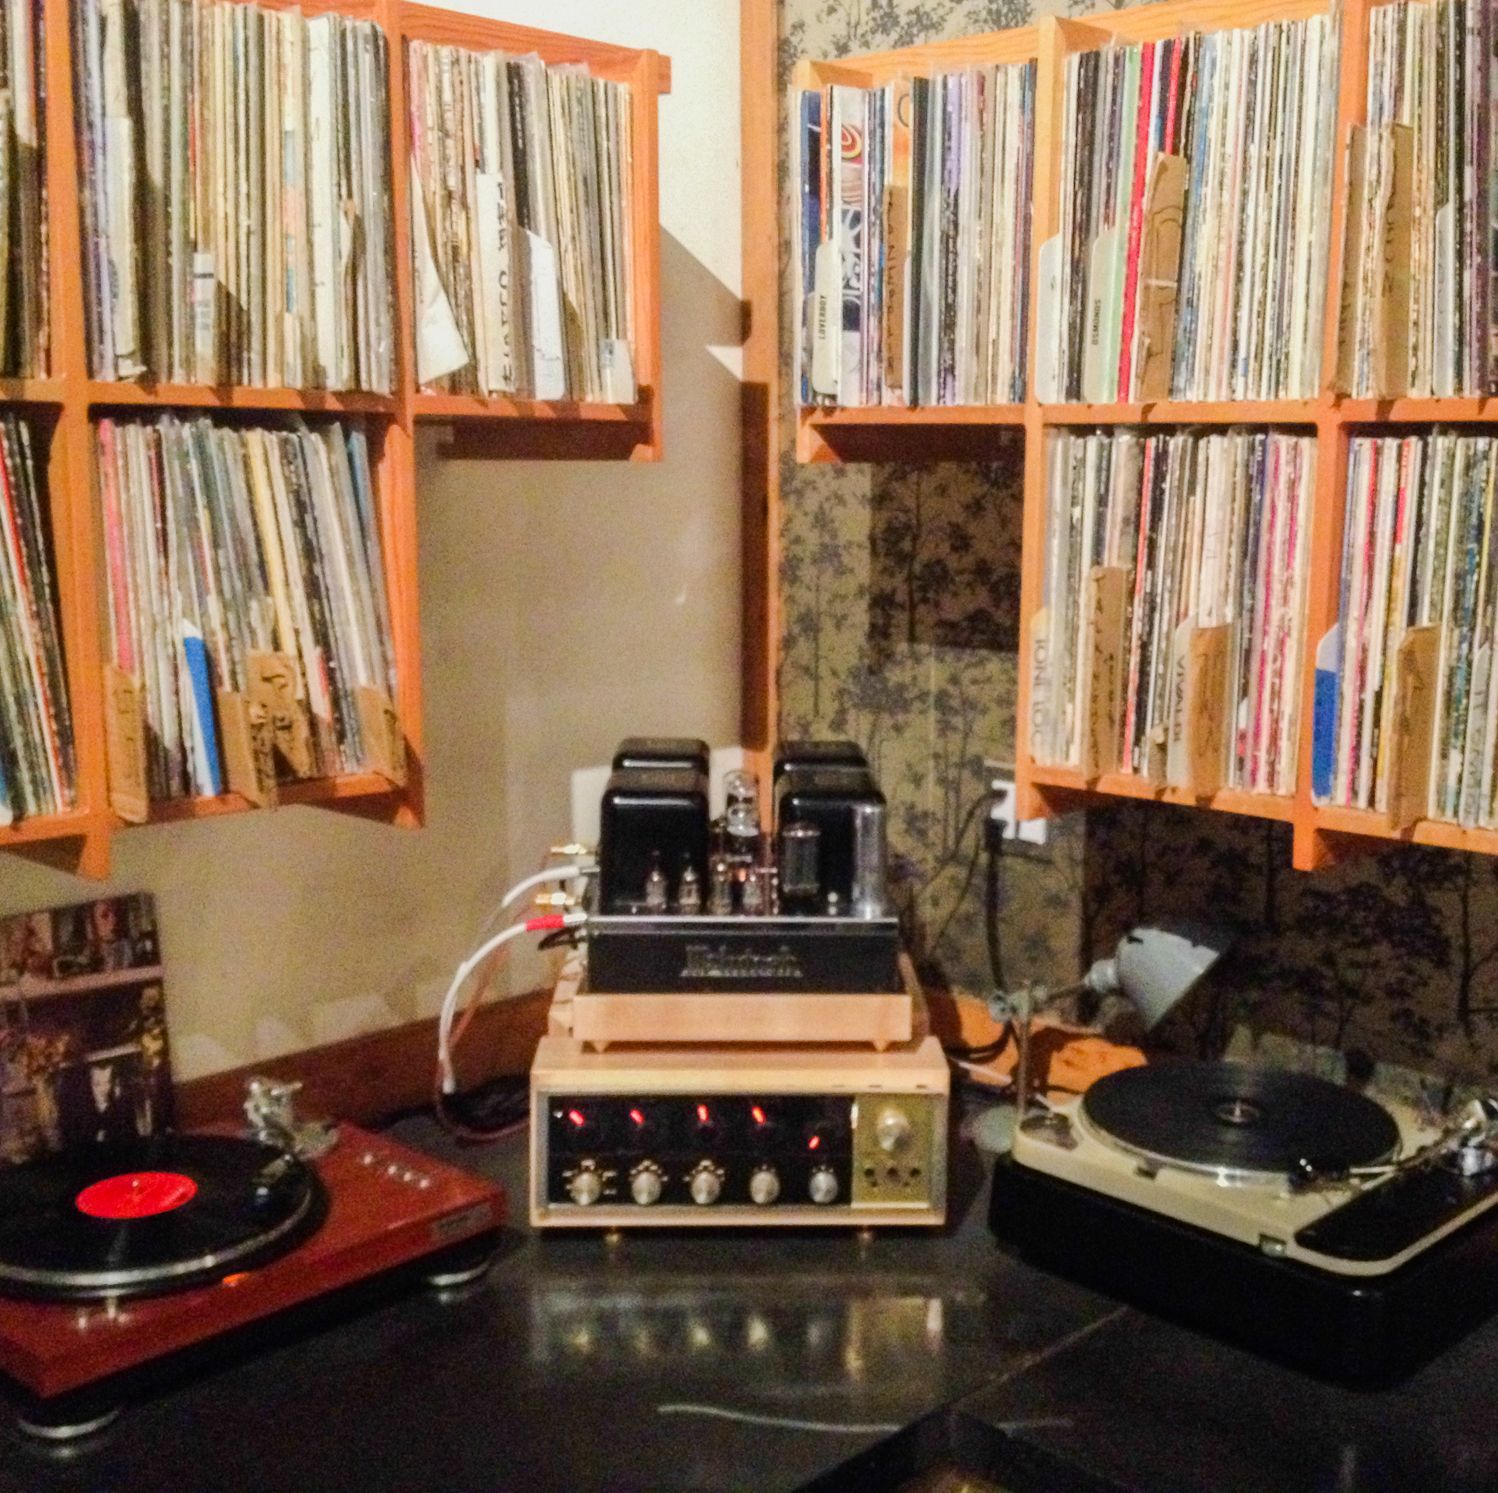 Here Is A Short List Of Record Players To Satisfy Your Home Listening Needs